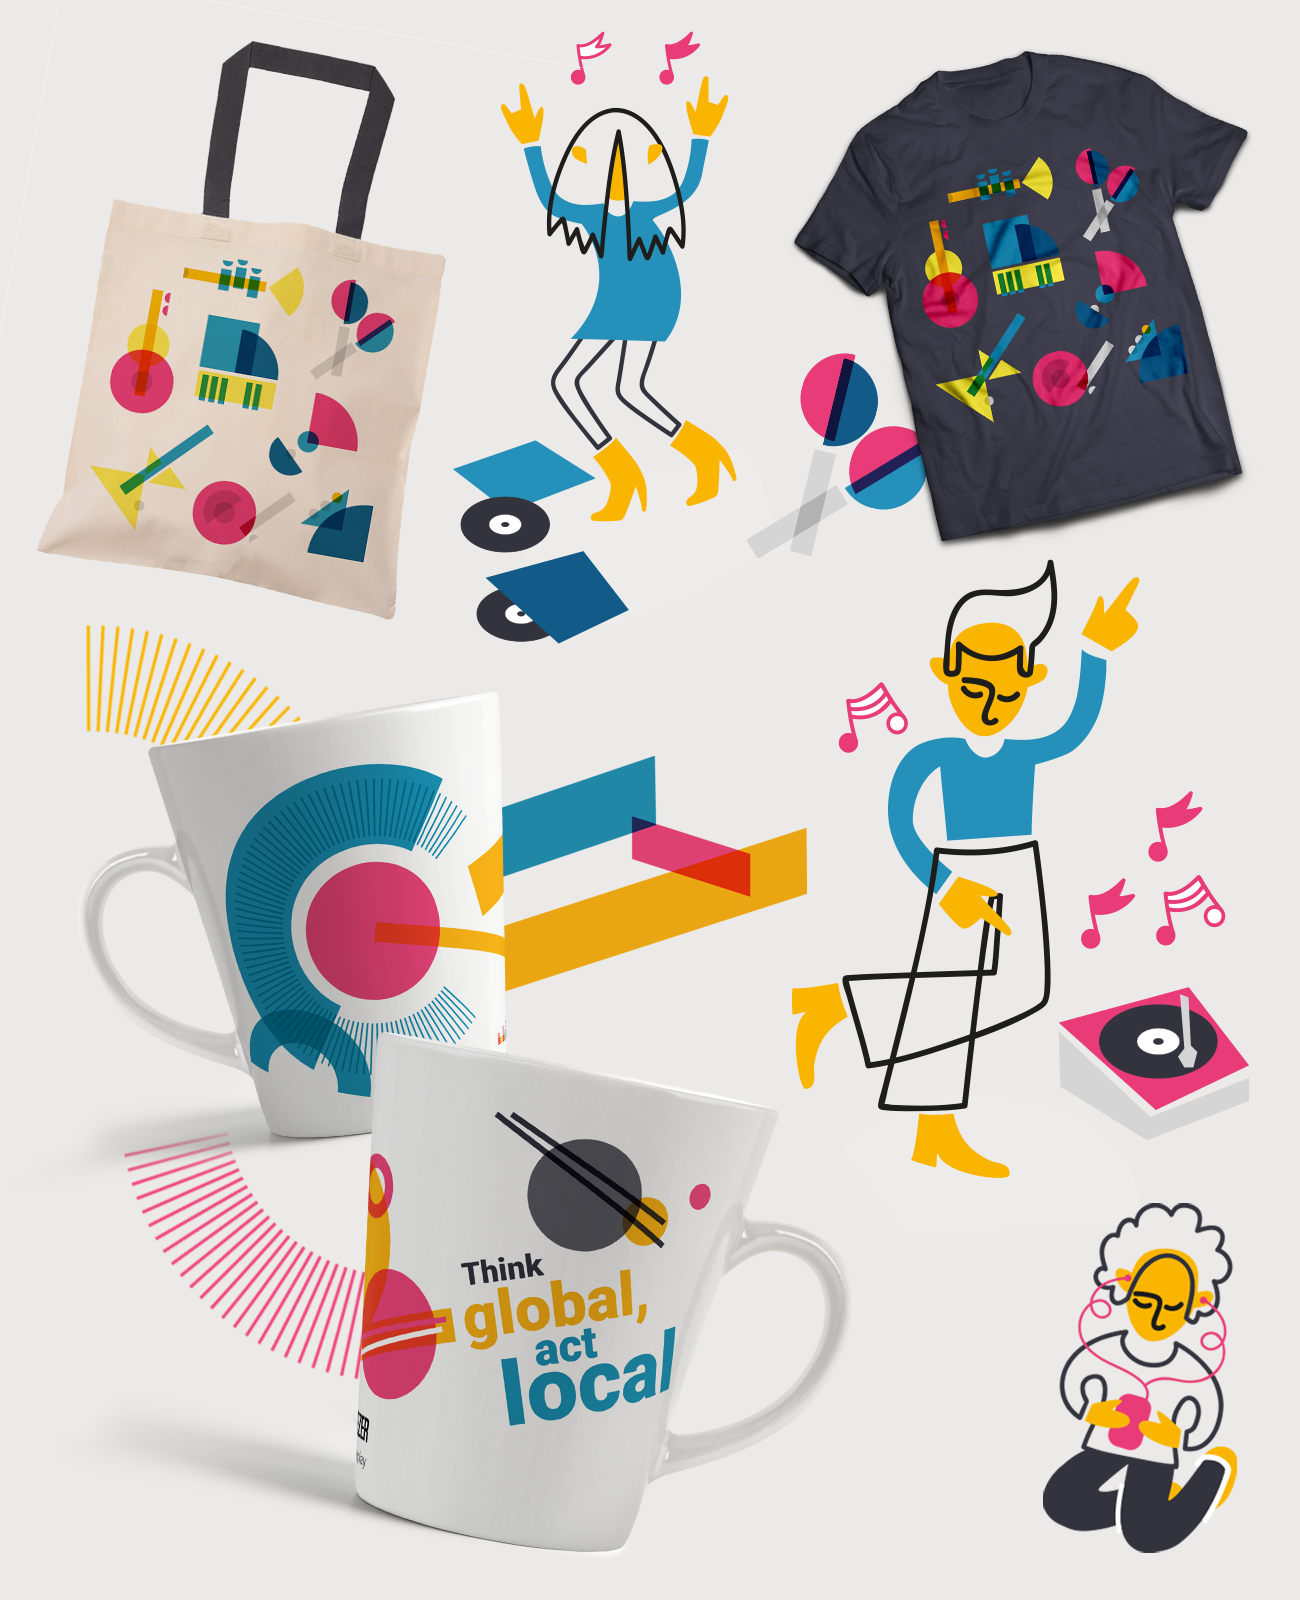 Deezer - merch and illustration